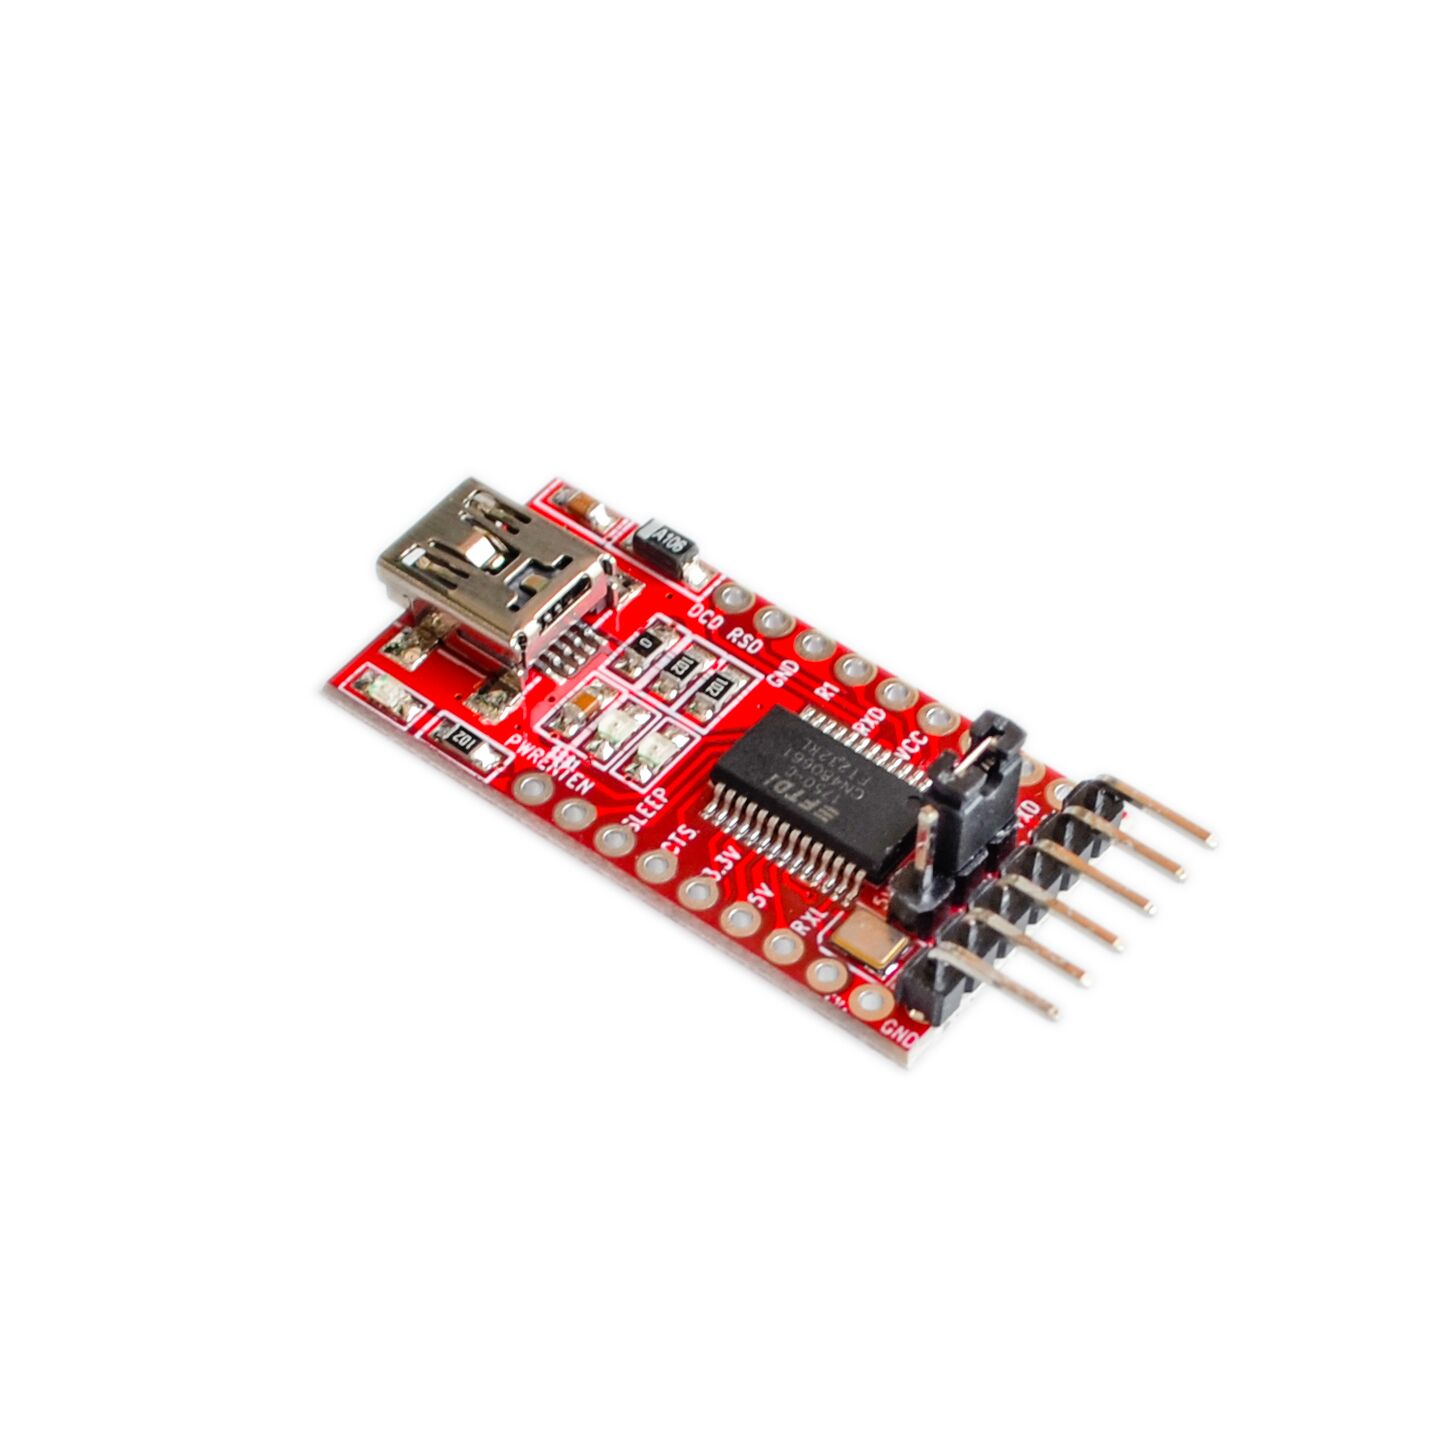 Free shipping 1pcs FT232RL FTDI USB 3.3V 5.5V to TTL Serial Adapter Module for Arduino Mini Port Рюкзак